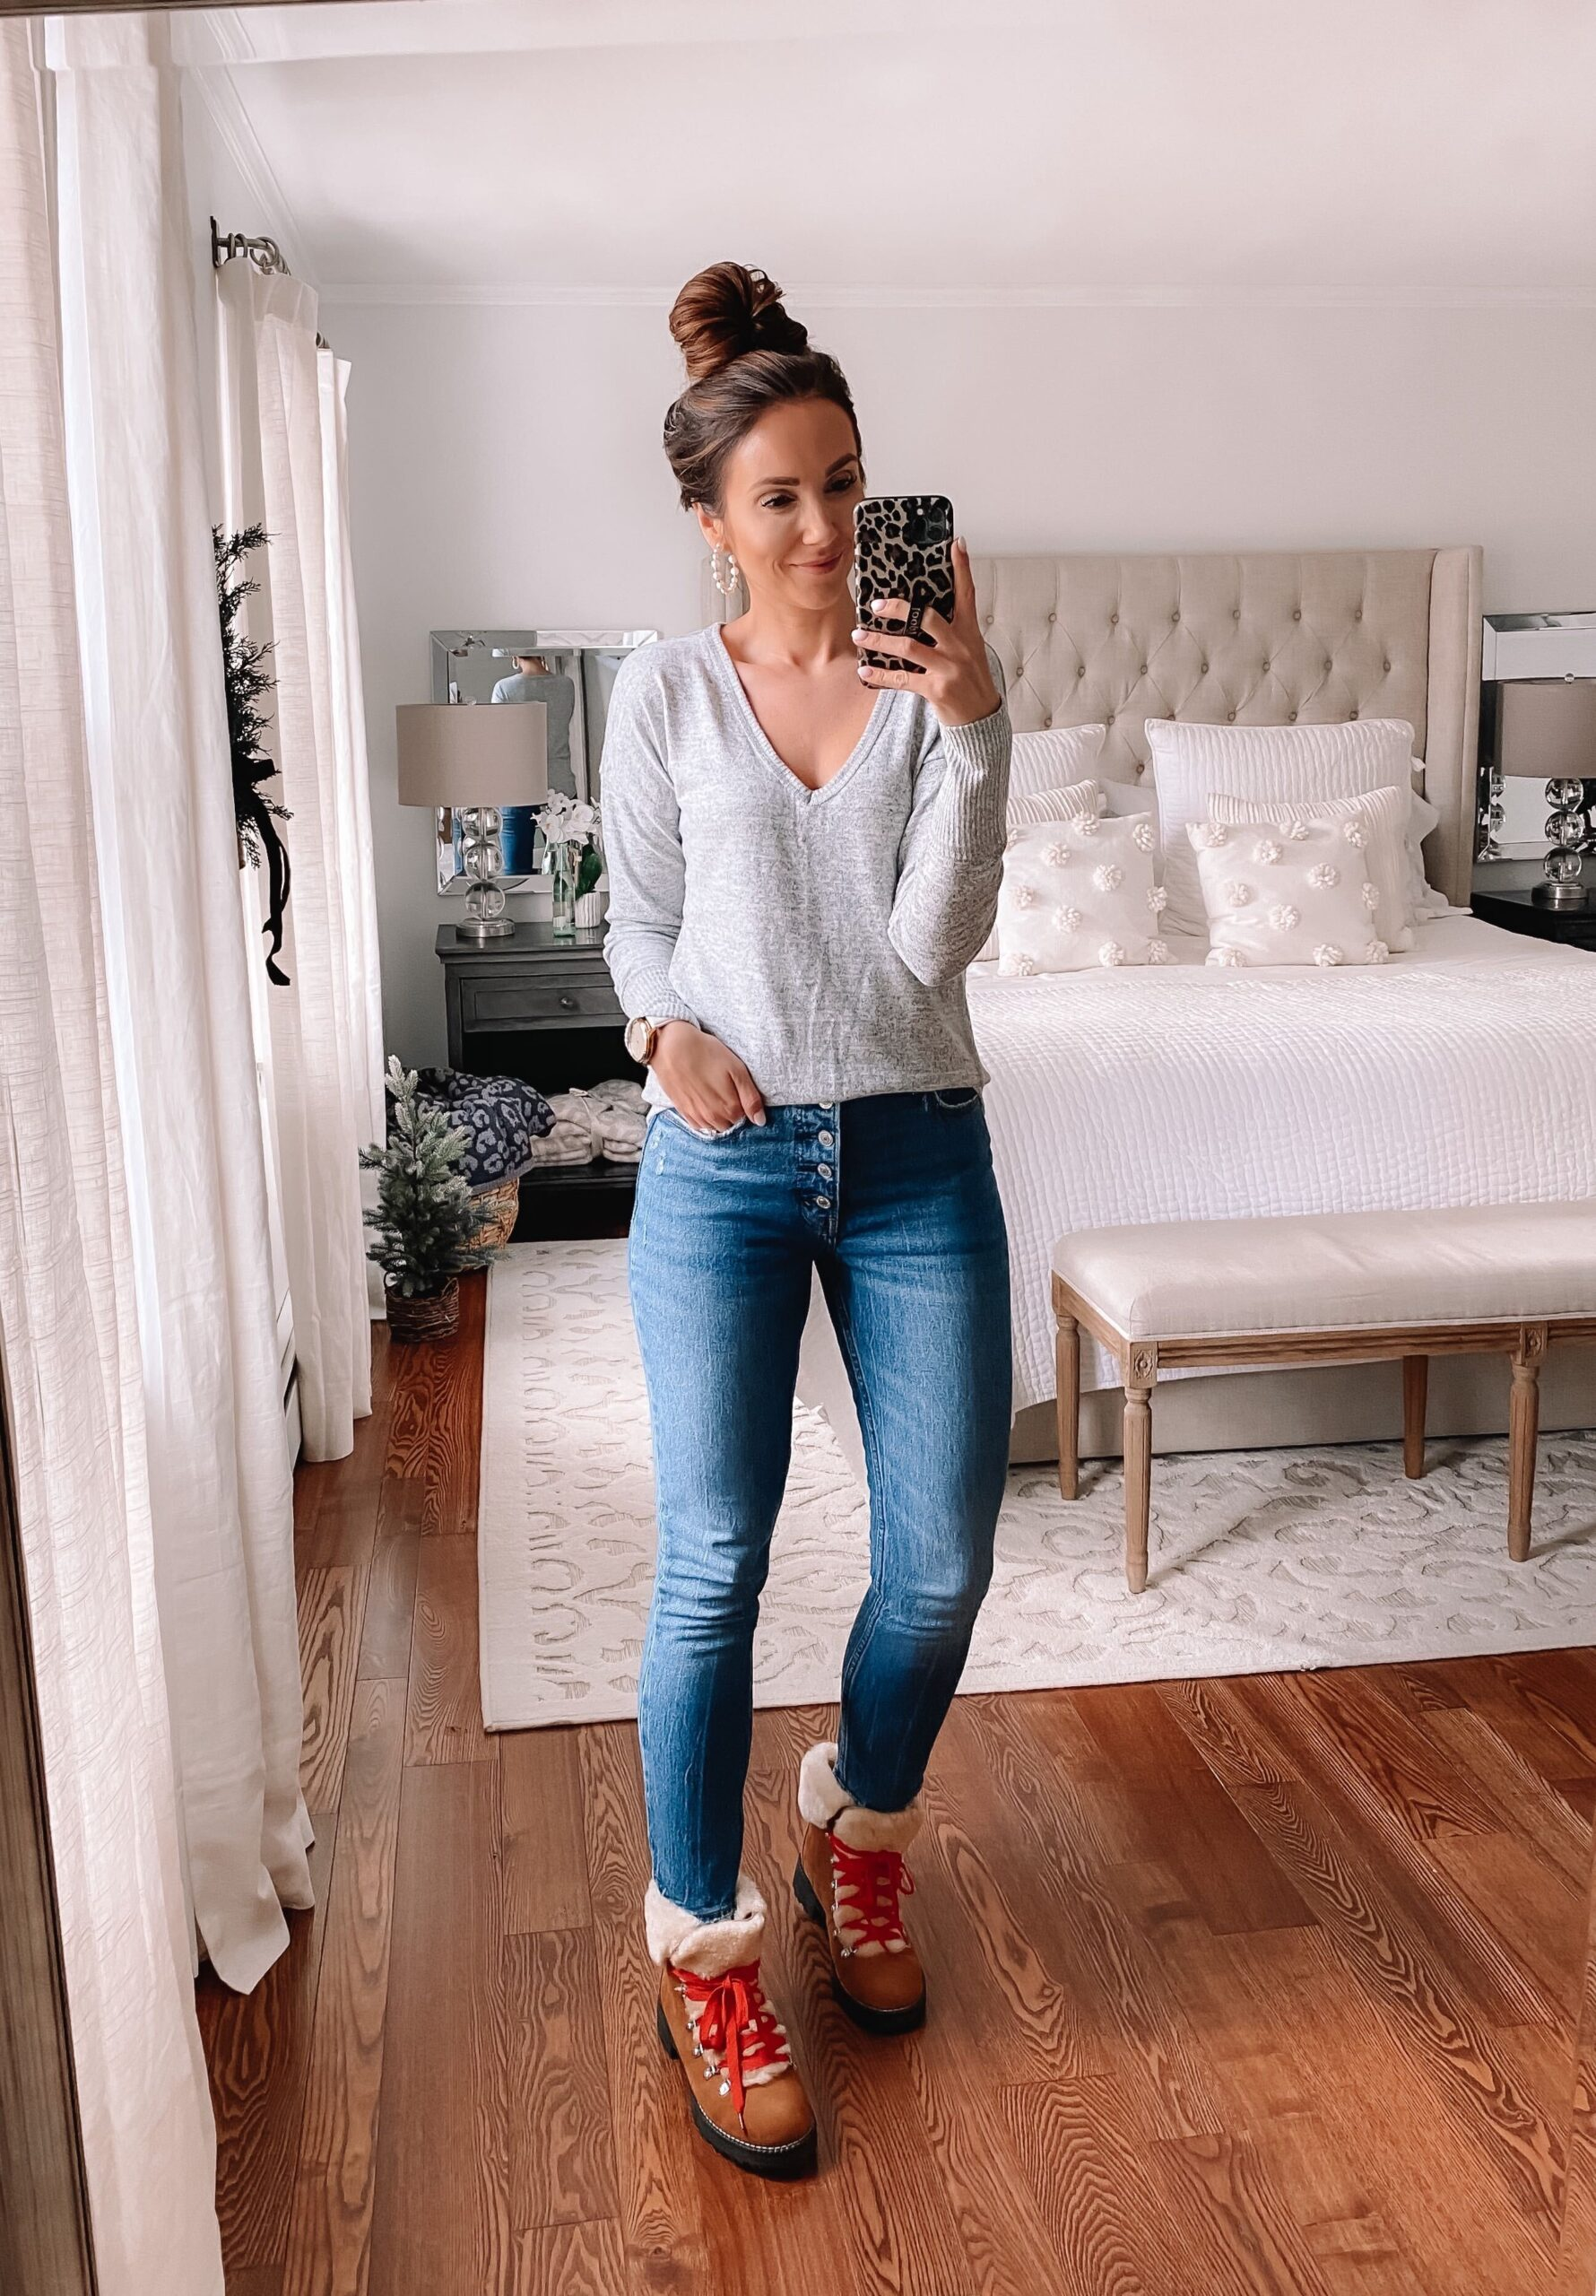 Abercrombie jeans and grey tee